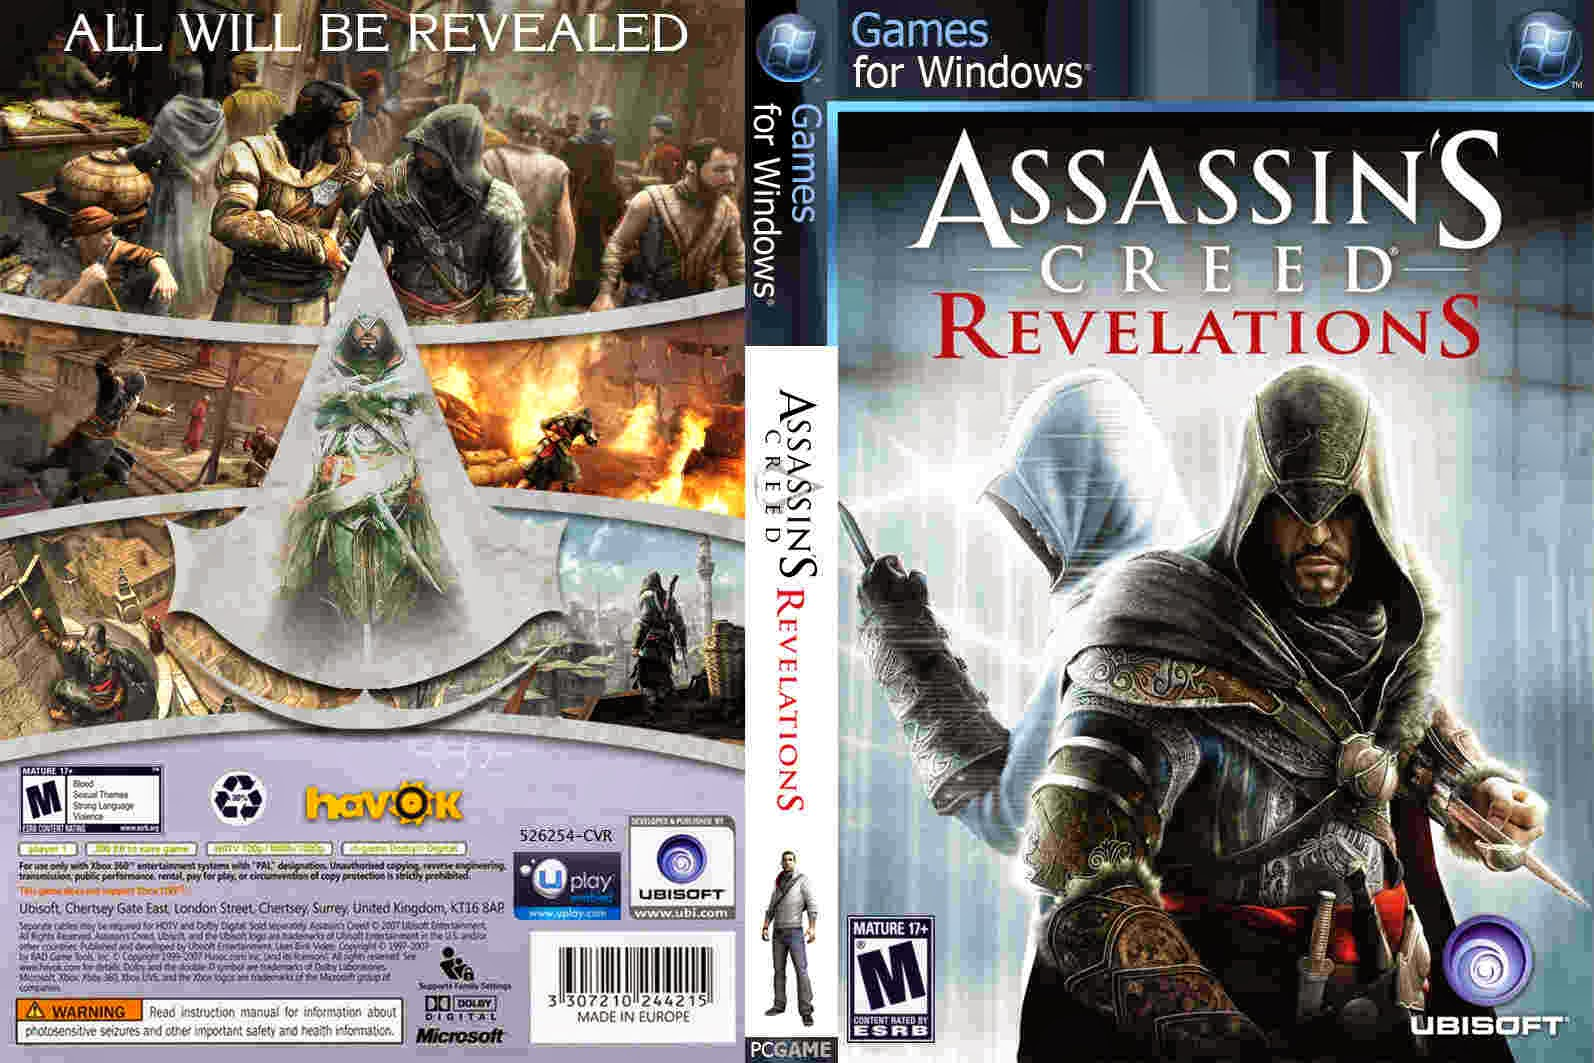 Assassins Creed Revelations imagens